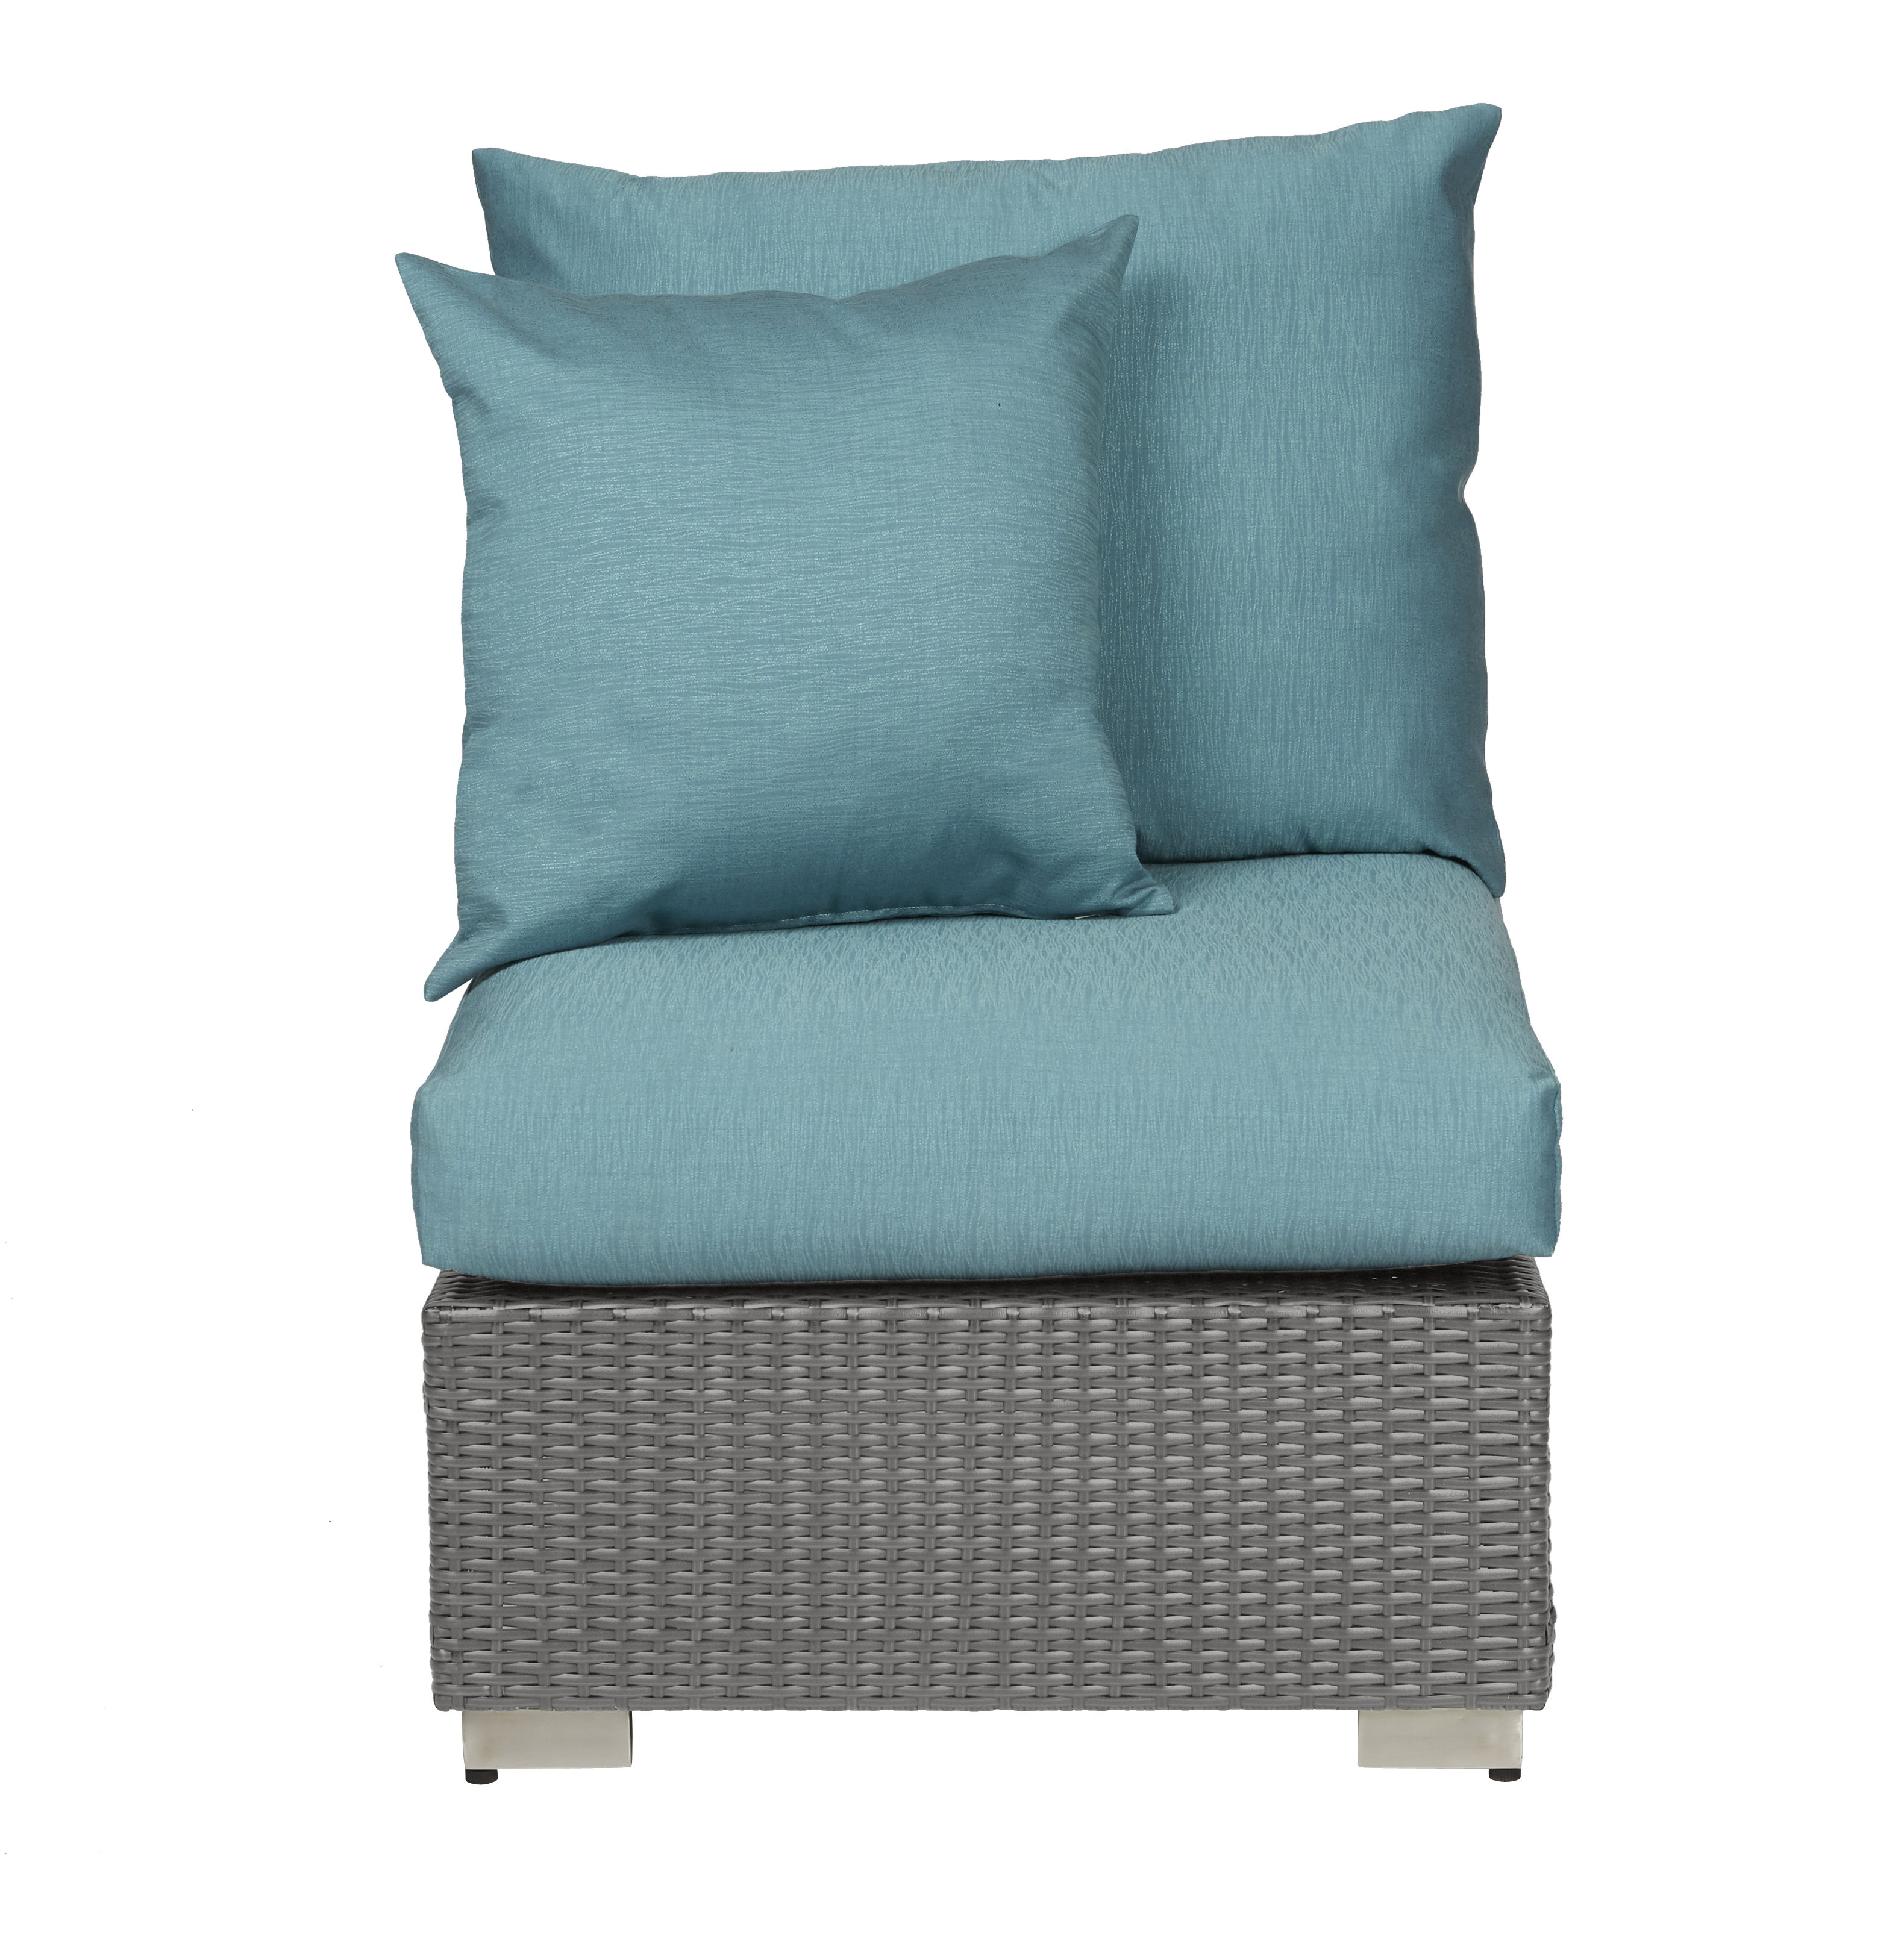 Well Known Mcmanis Outdoor Patio Chair With Cushions Intended For Mcmanis Patio Sofas With Cushion (View 18 of 20)